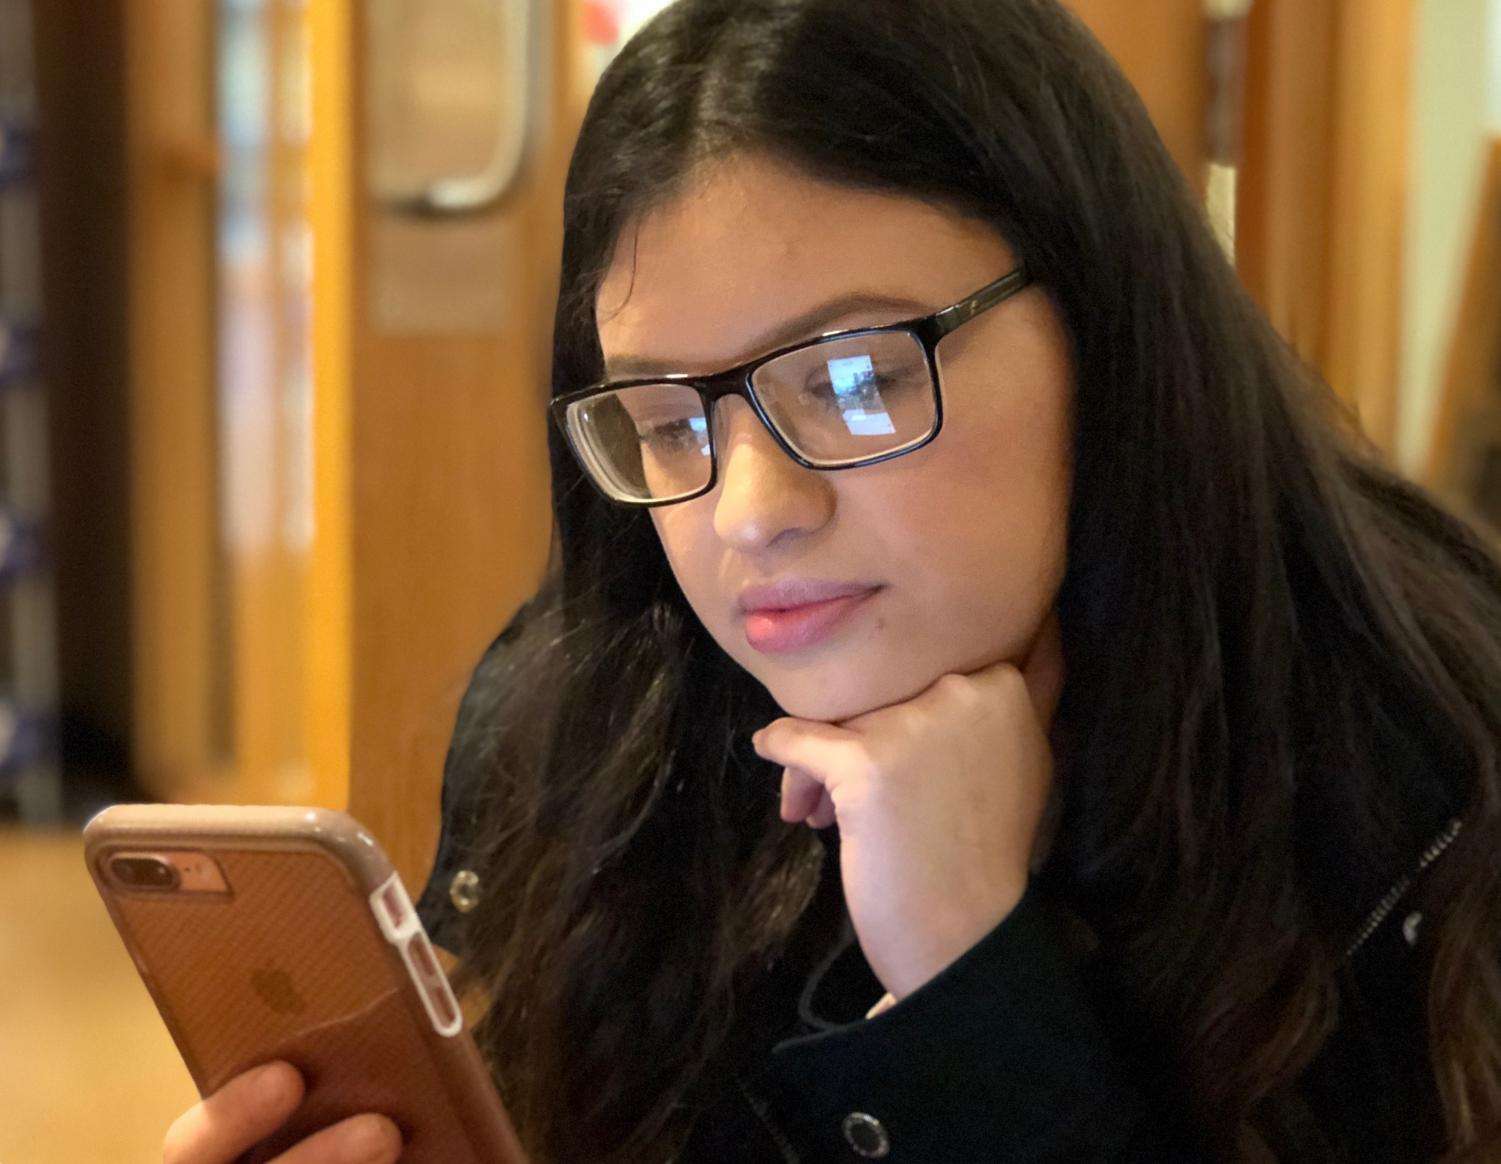 Angie Munoz, primary education sophomore, uses her phone during leisure time at University Grounds Coffee Shop. Photo by Meleena Richardson.